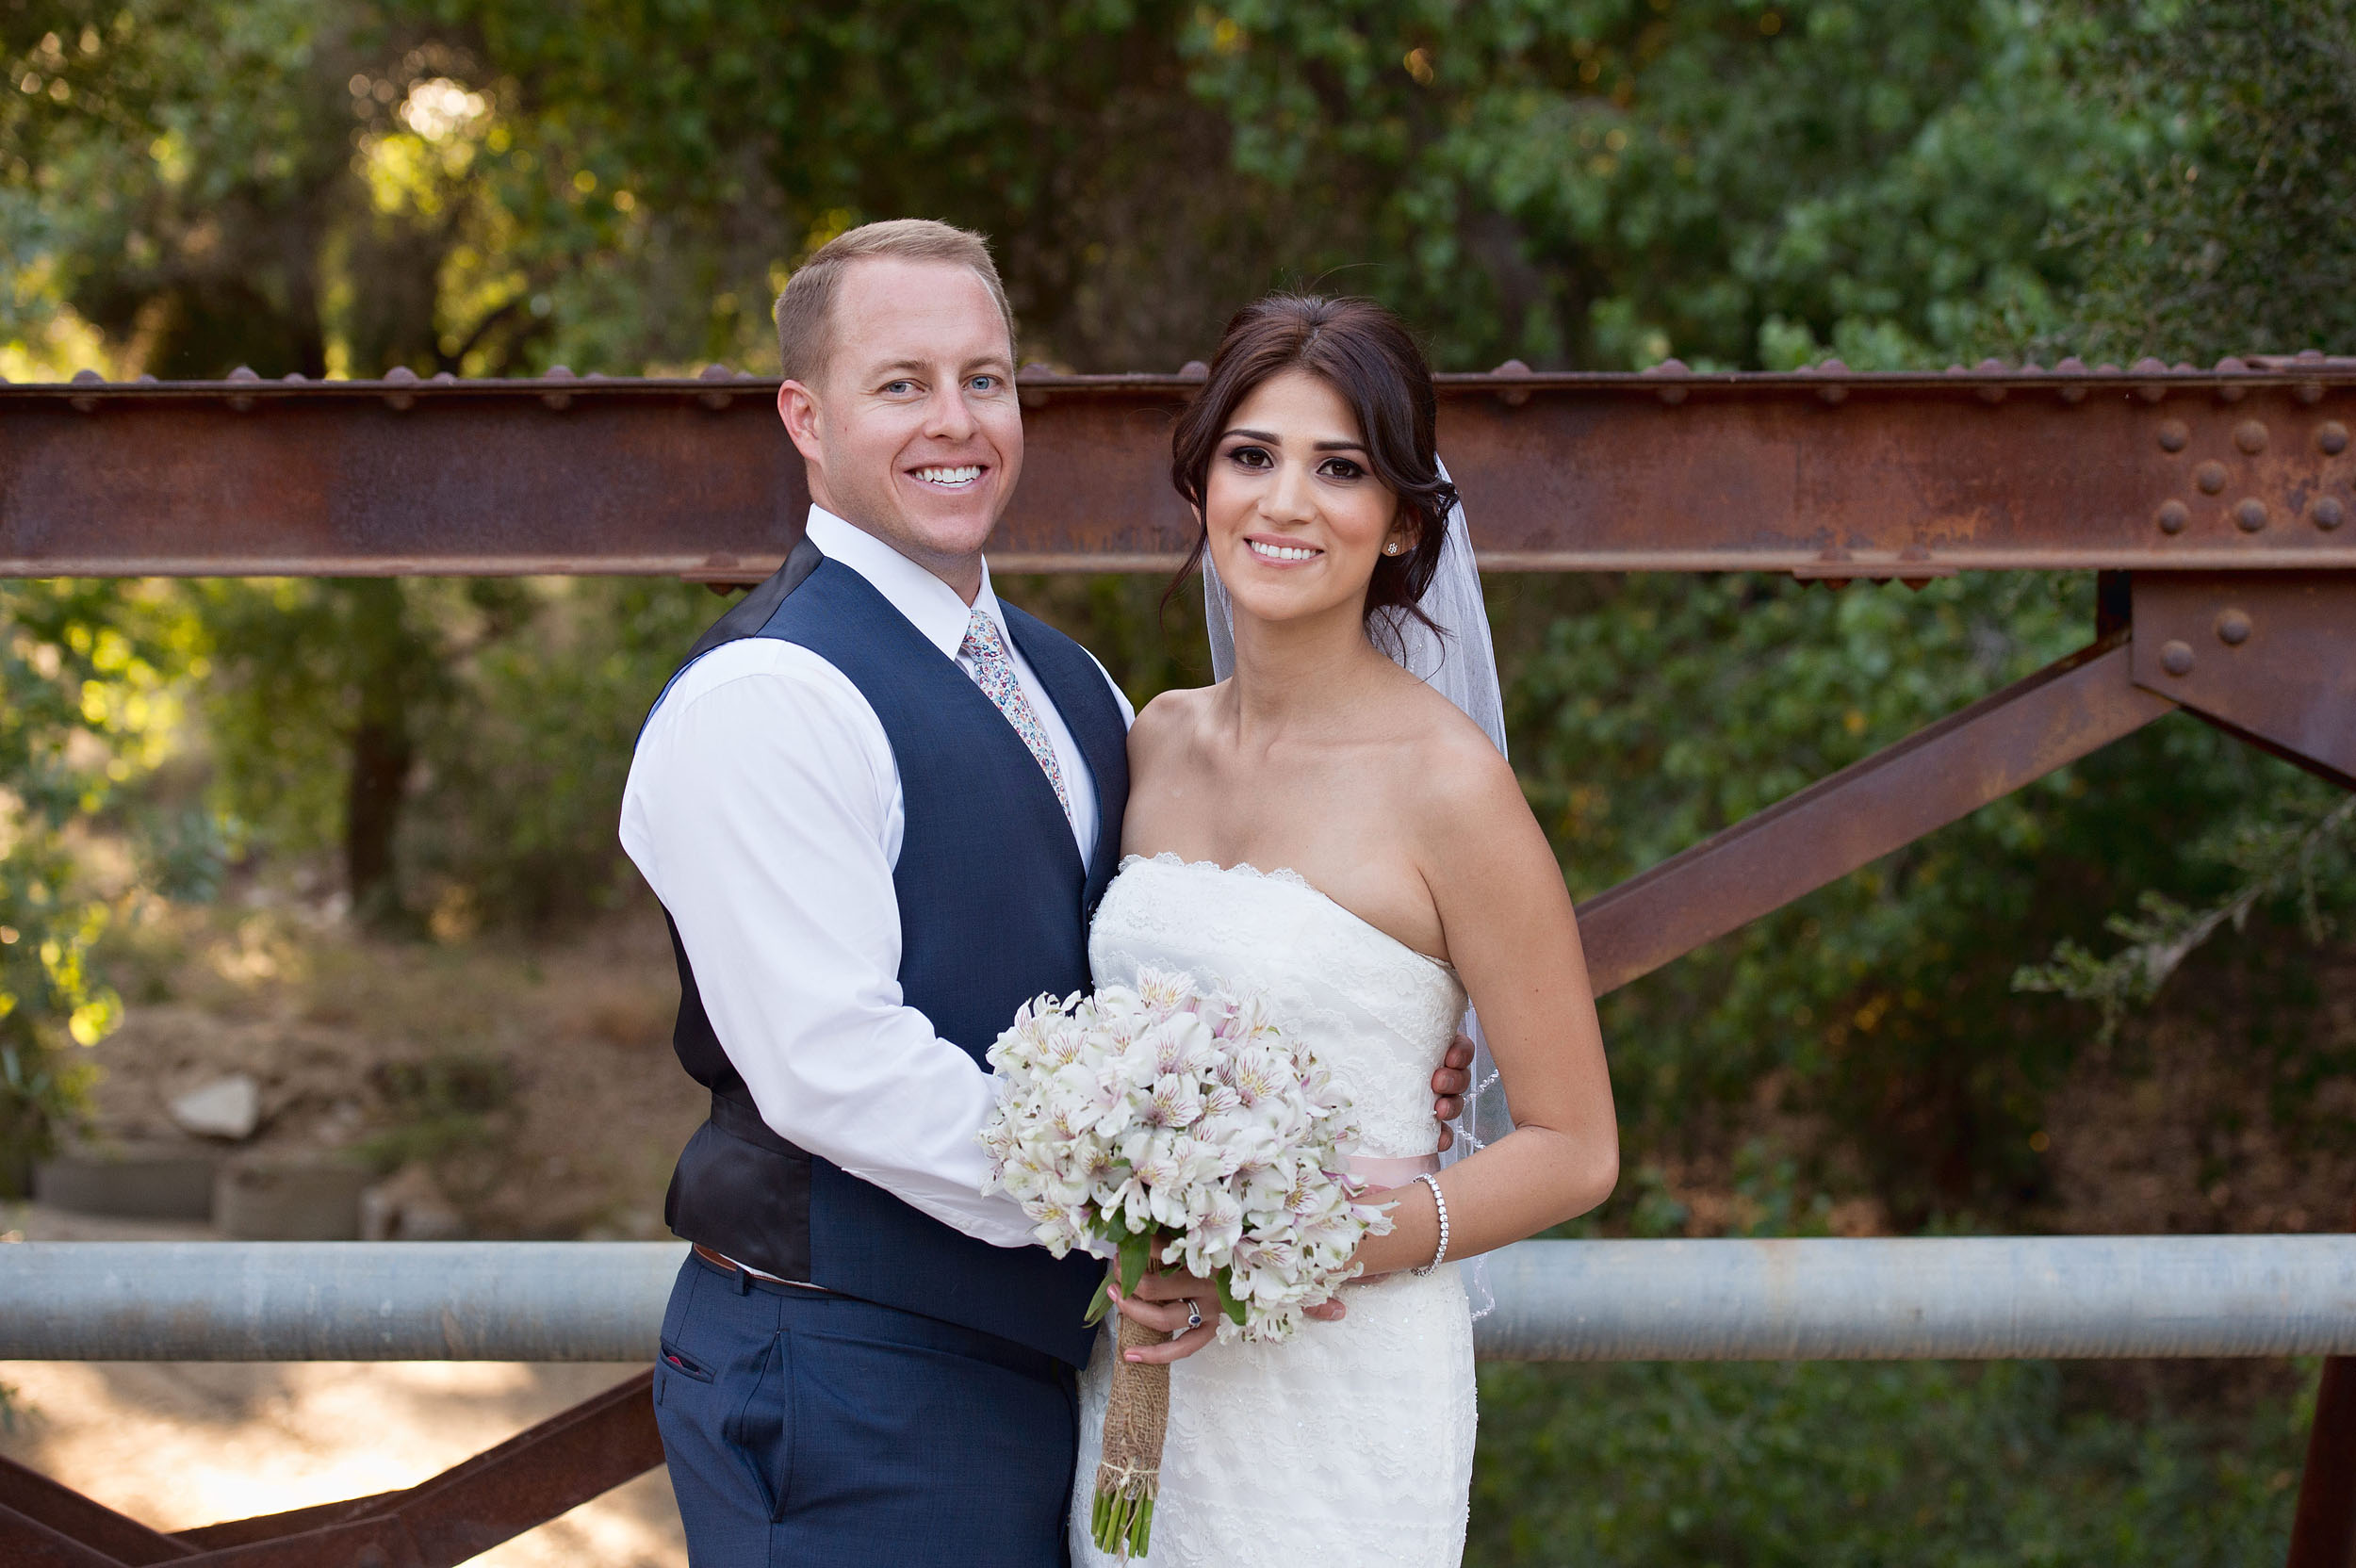 Bride and groom on bridge at Ollis Ranch in Redlands.